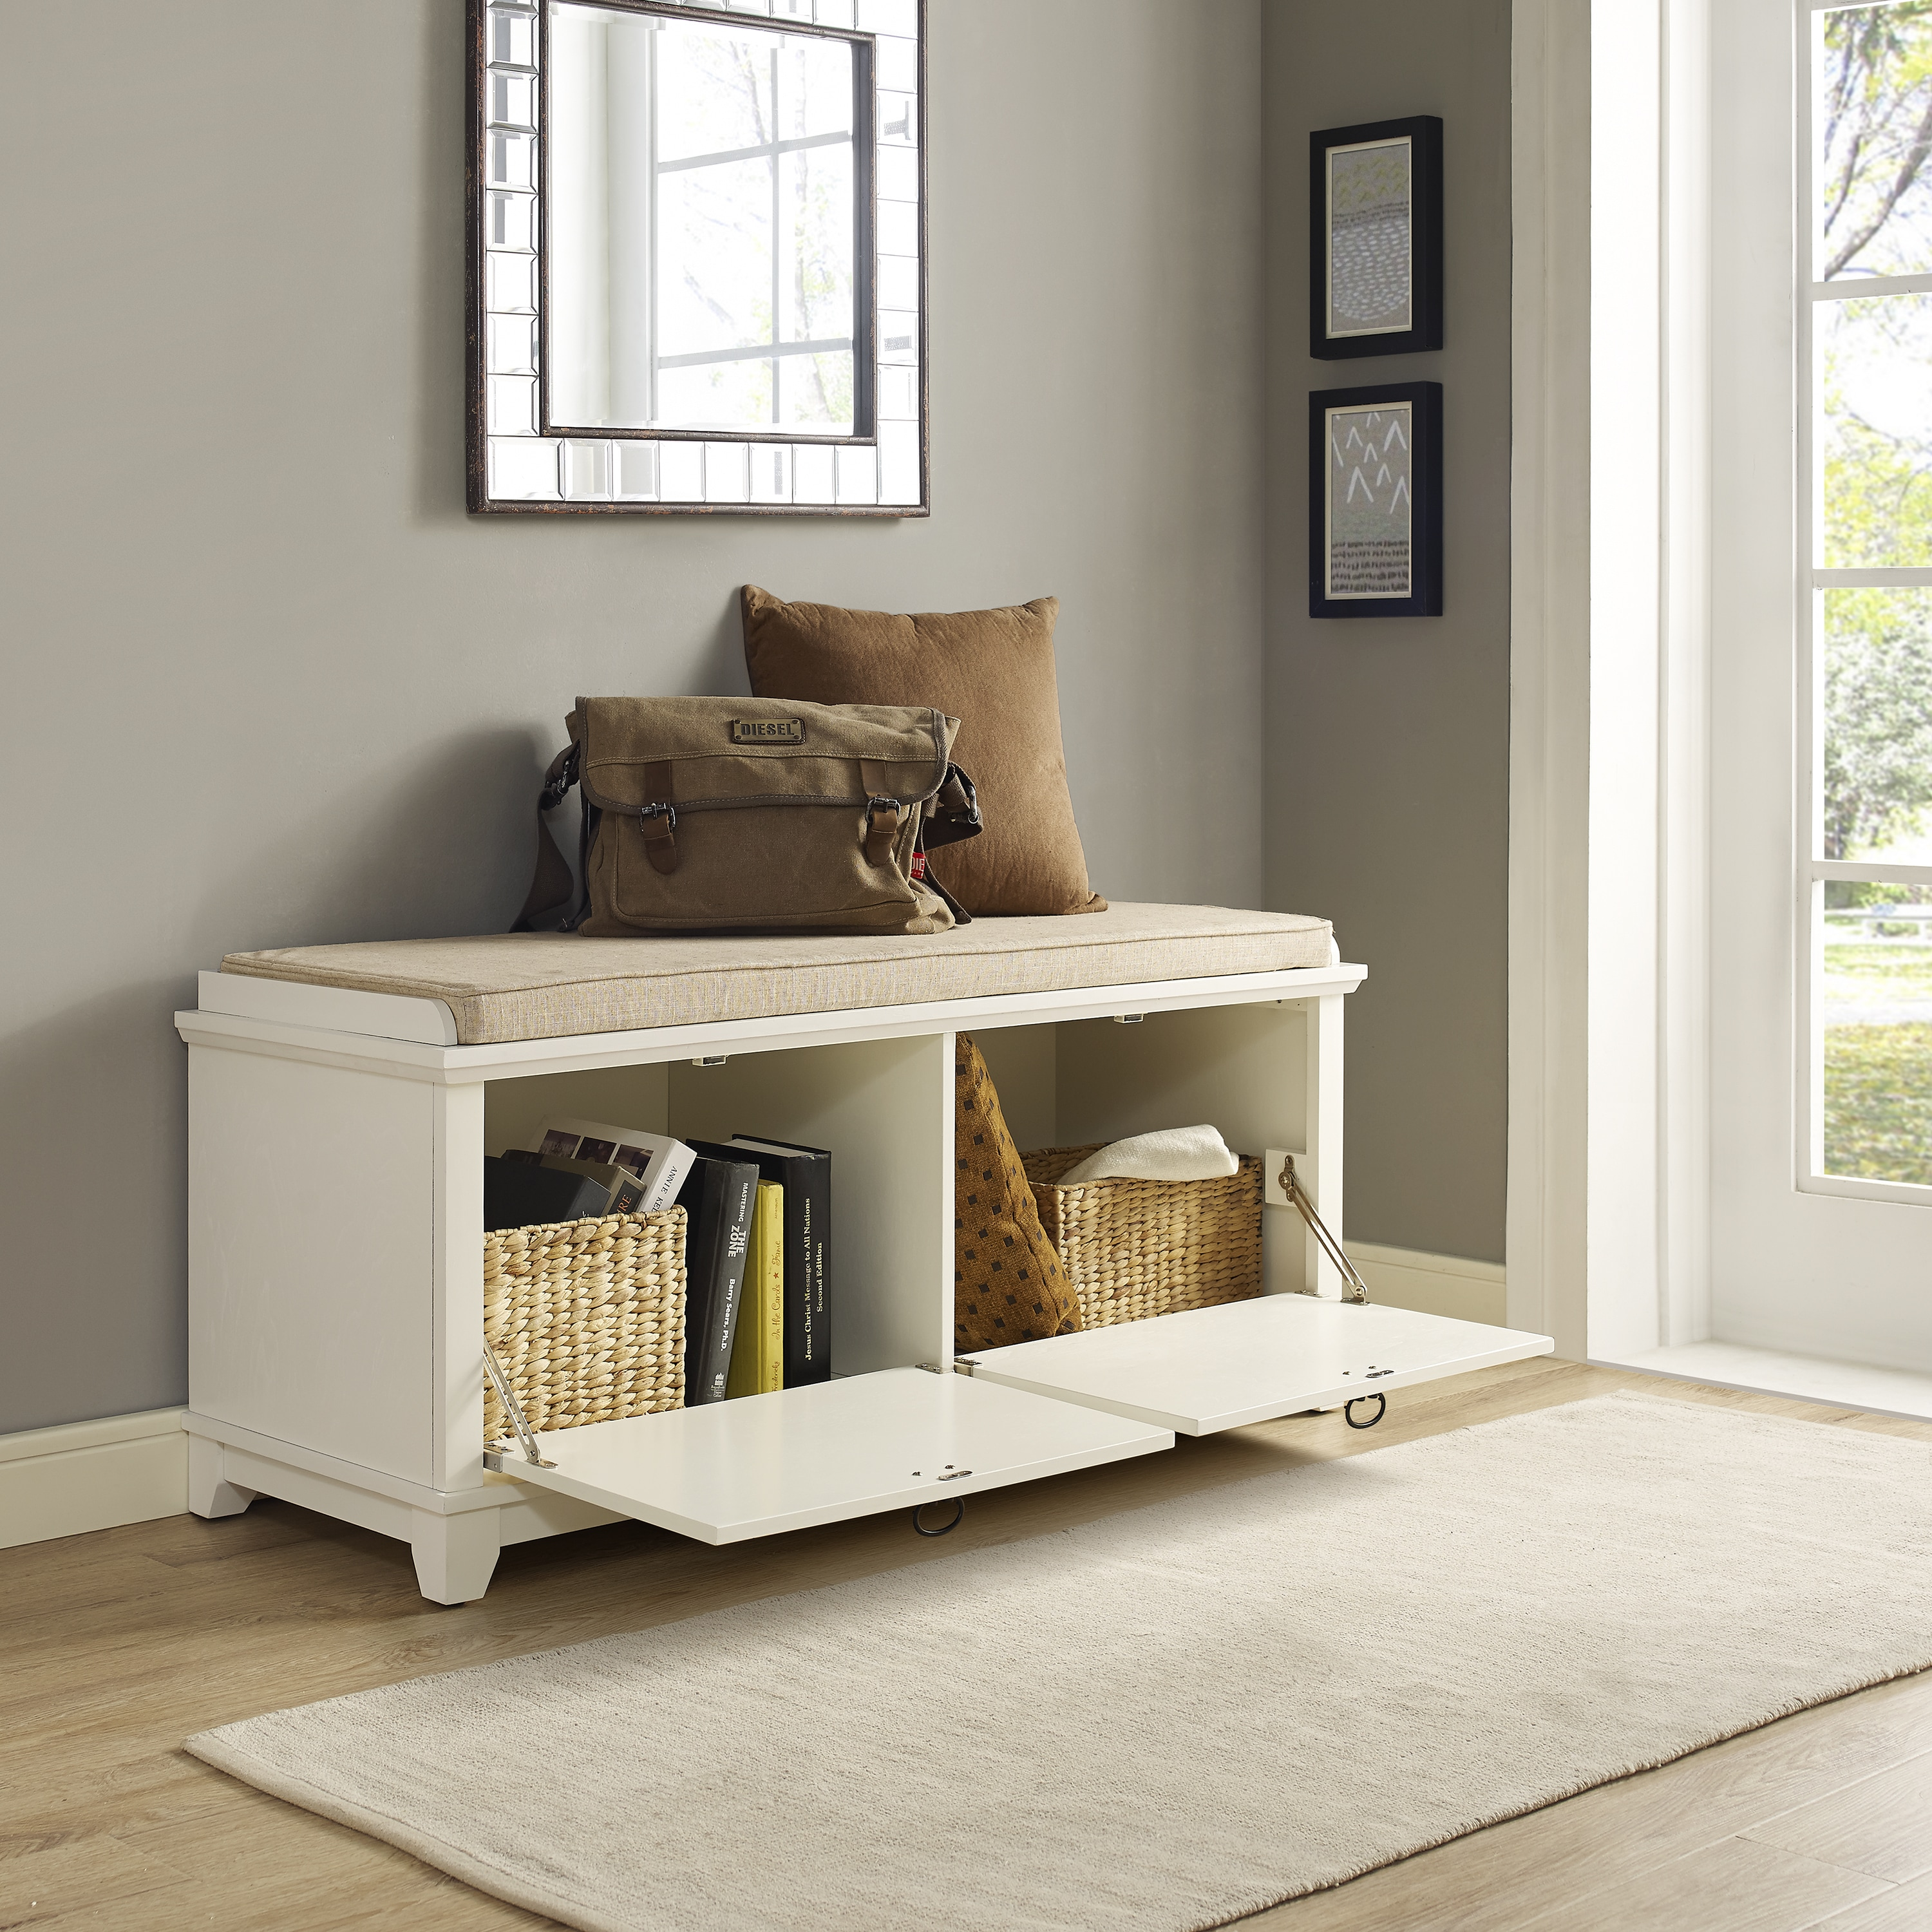 Adler white entryway bench